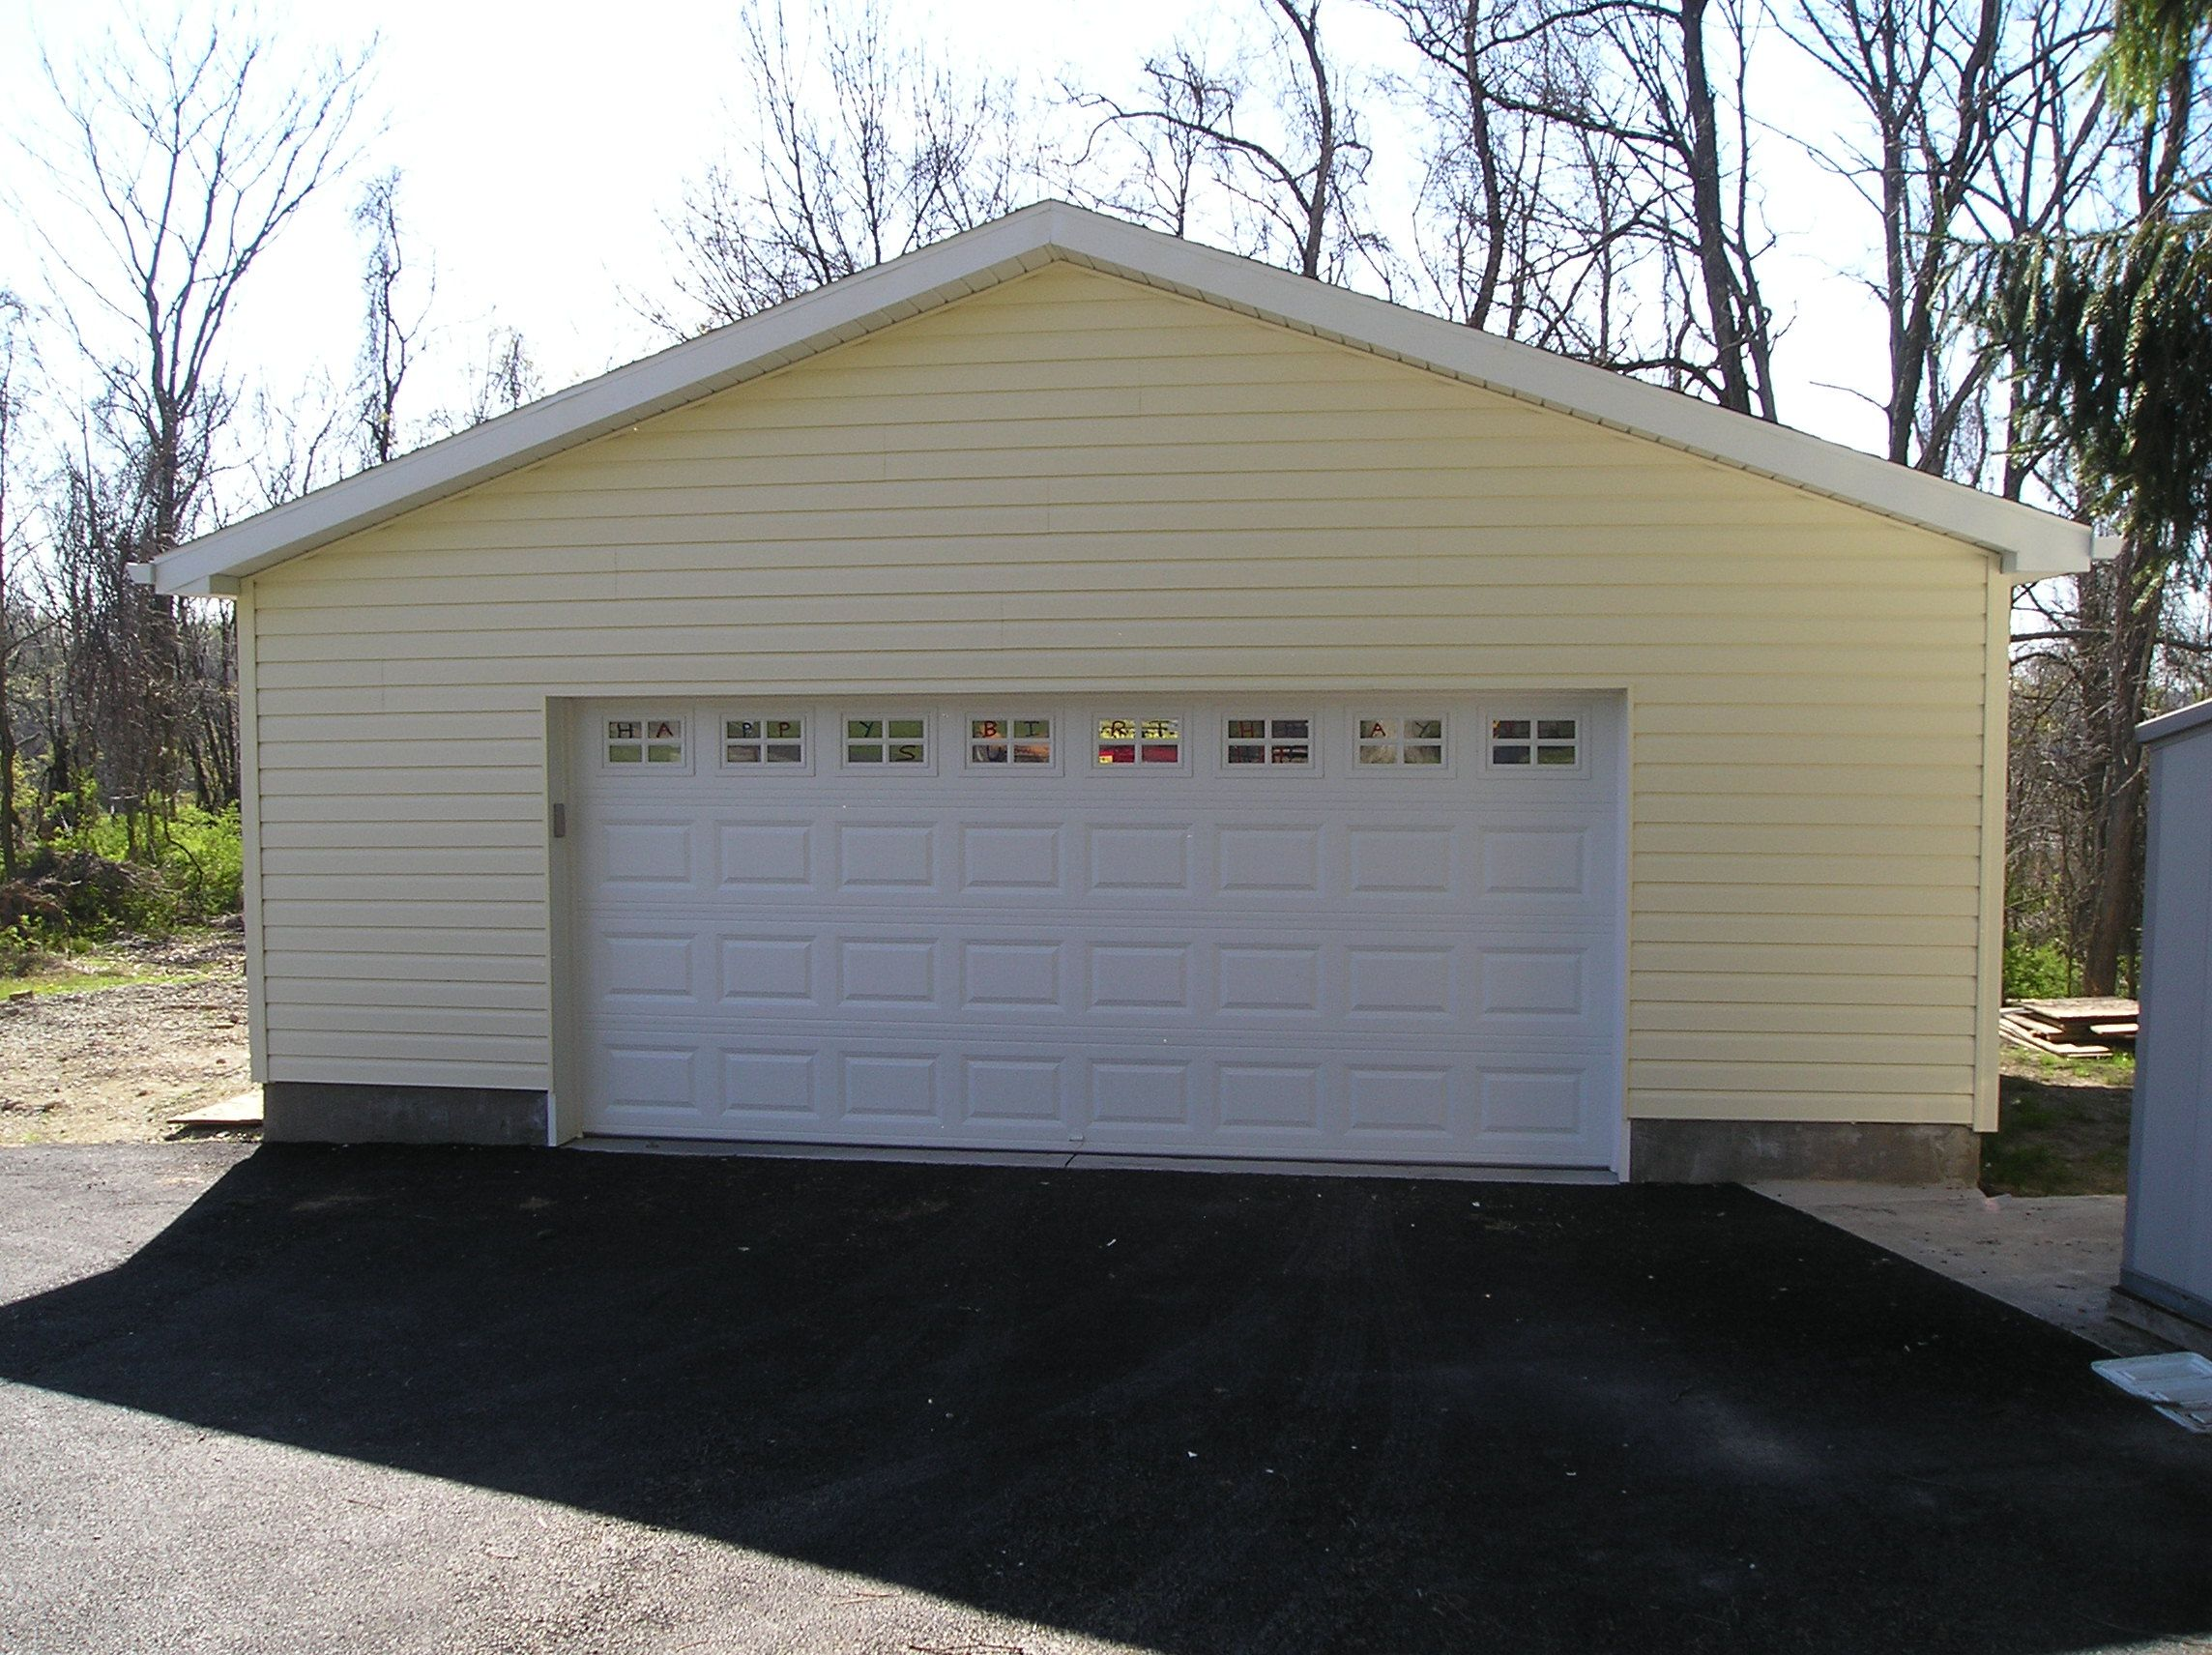 This Is A Chi Garage Door Model 2283 Installed By Thomas V Giel